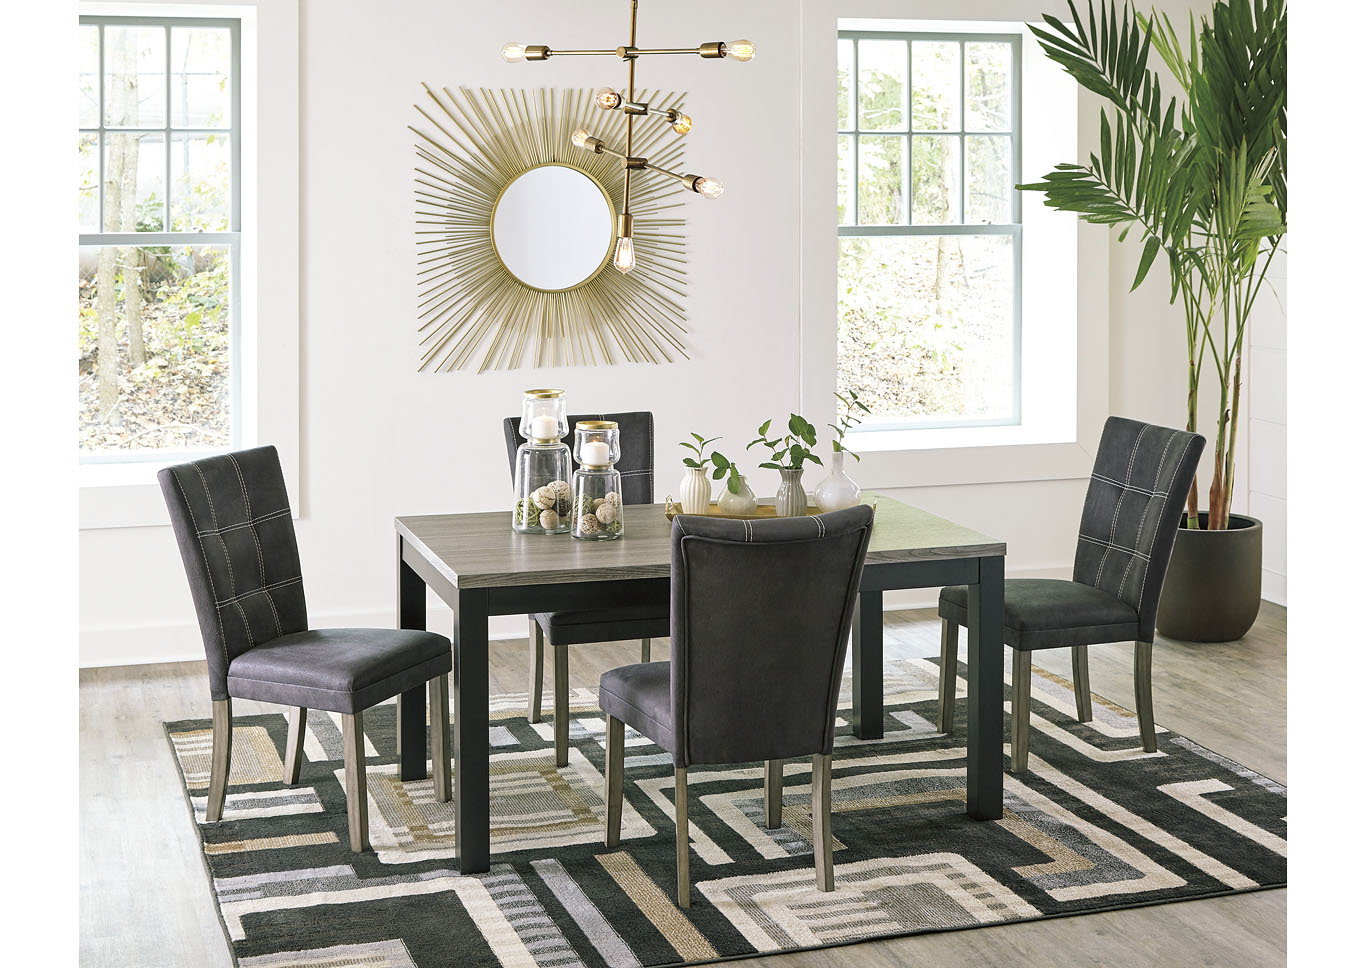 Dontally Two-tone Dining Room Table w/4 Side Chair,Benchcraft